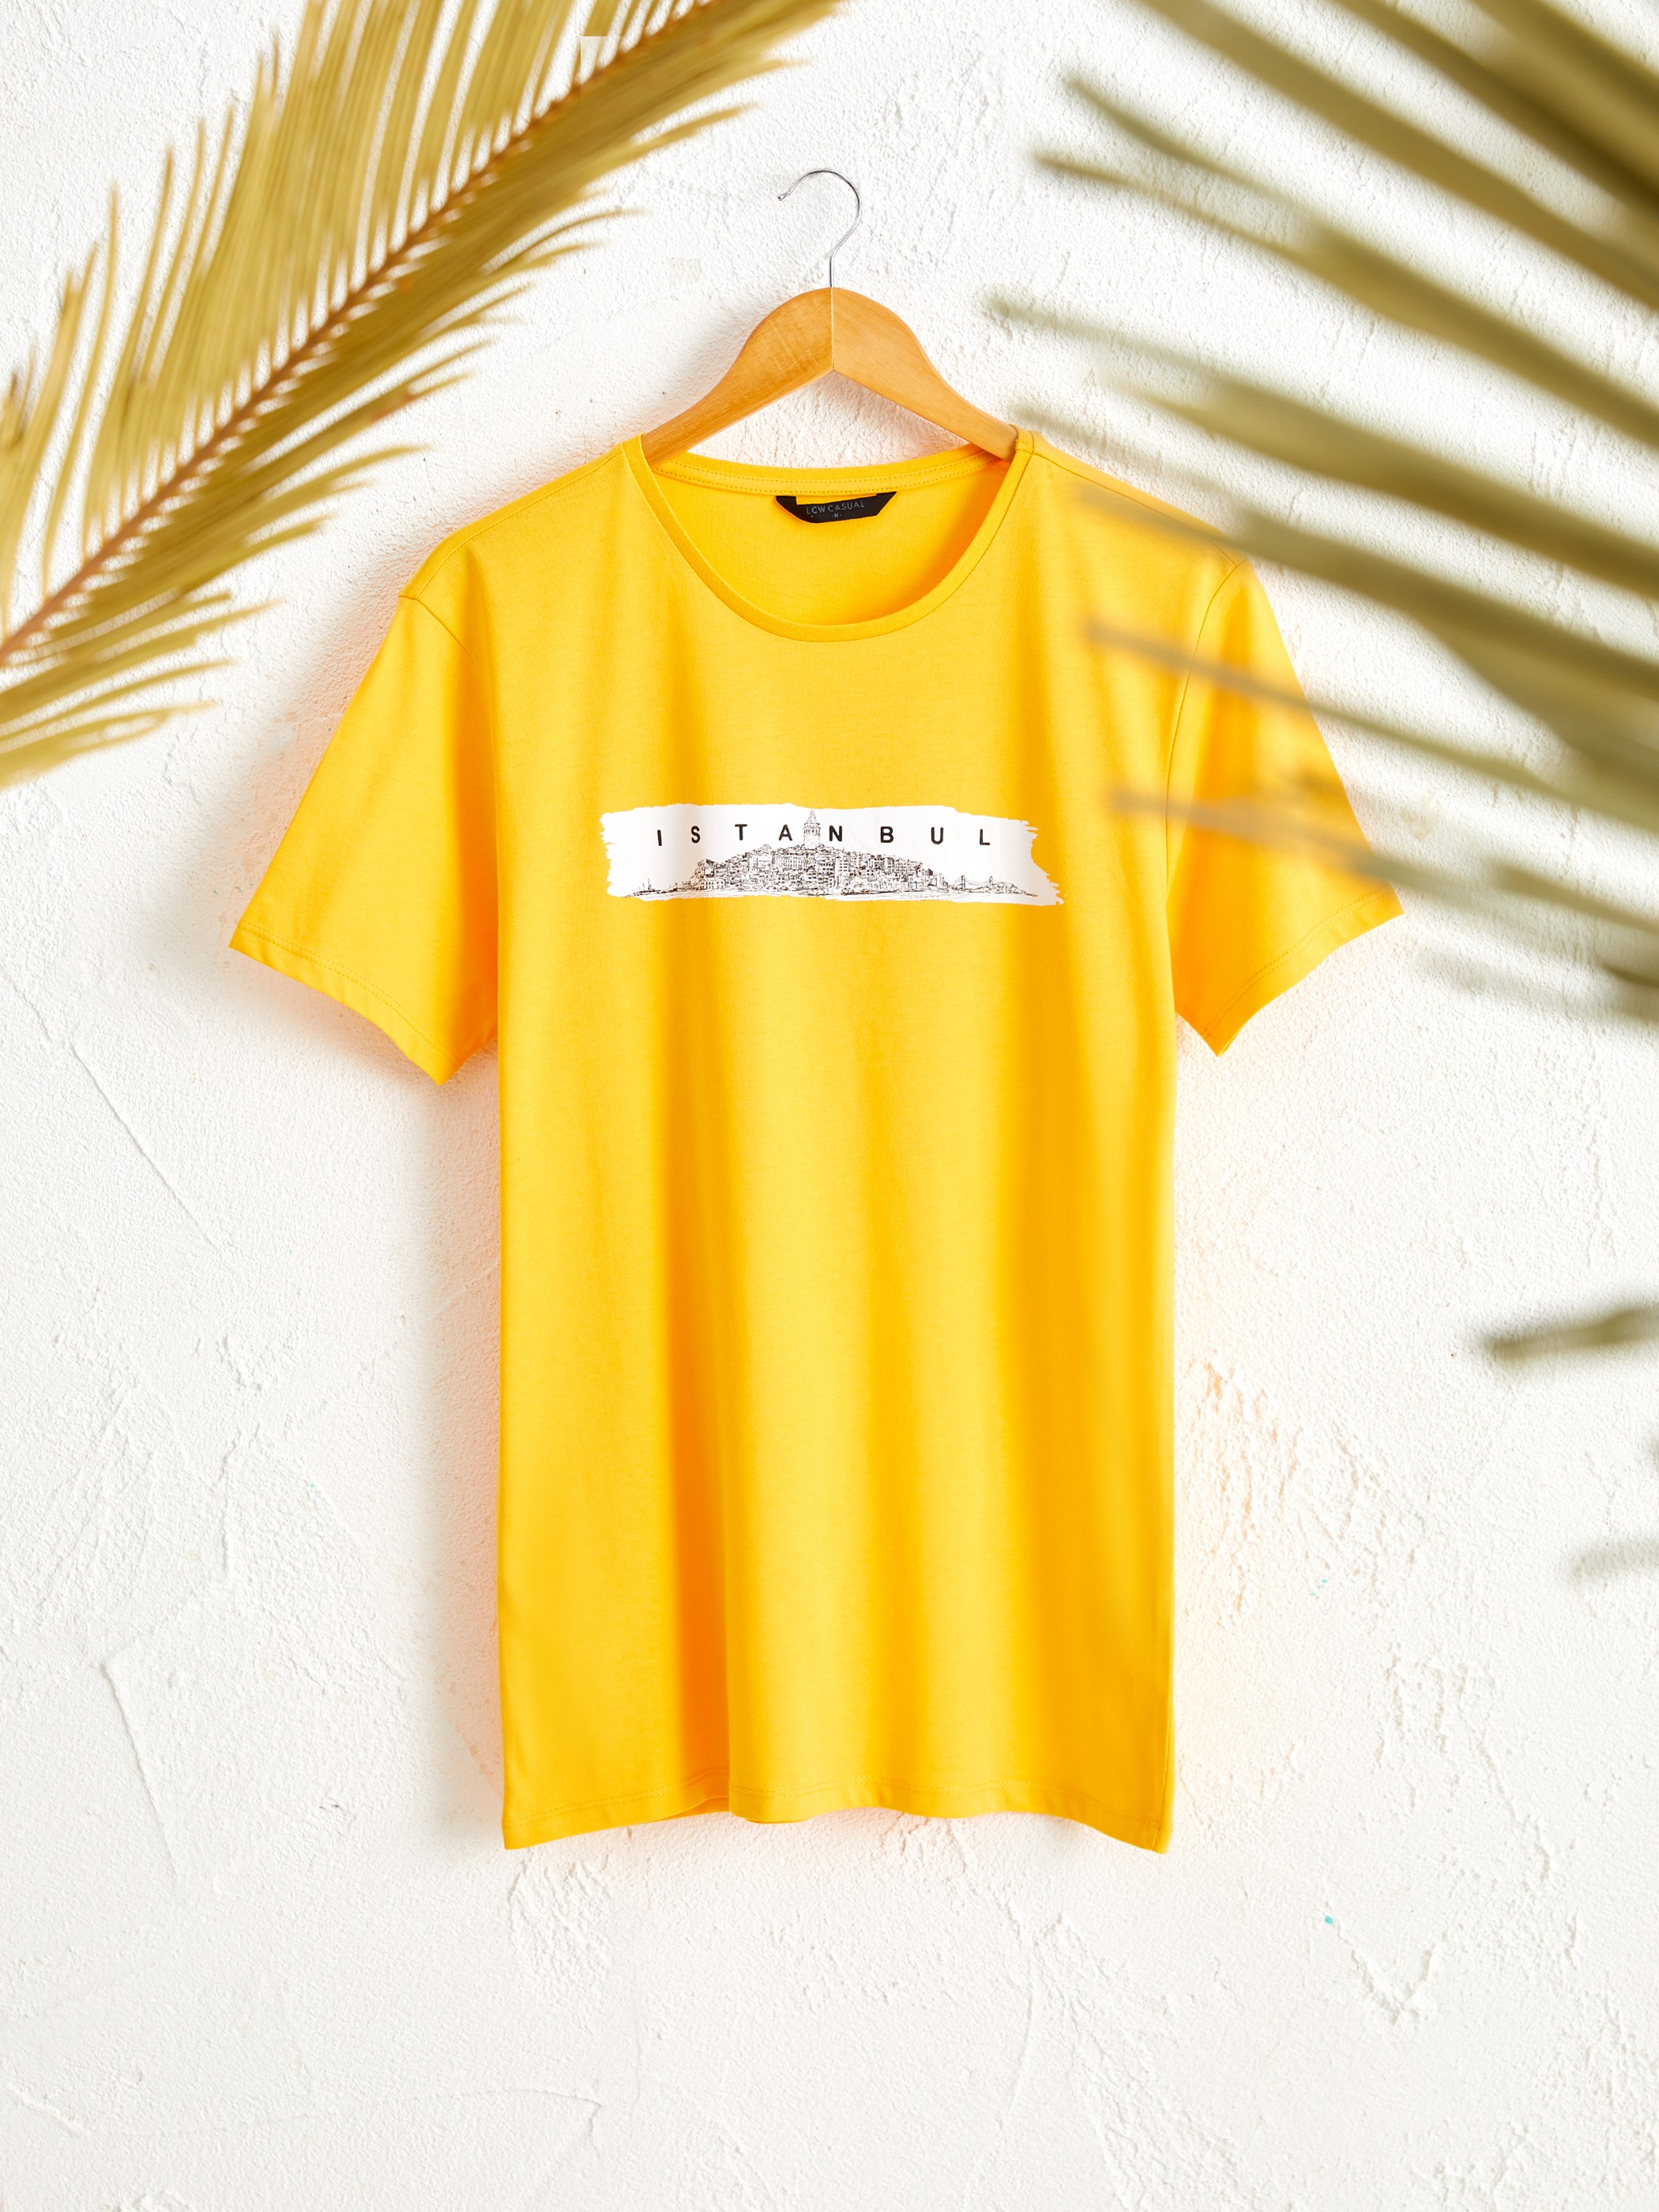 ORANGE - Crew Neck Short Sleeve Istanbul Printed Cotton T-Shirt Father and Son Matching - 0SU982Z8